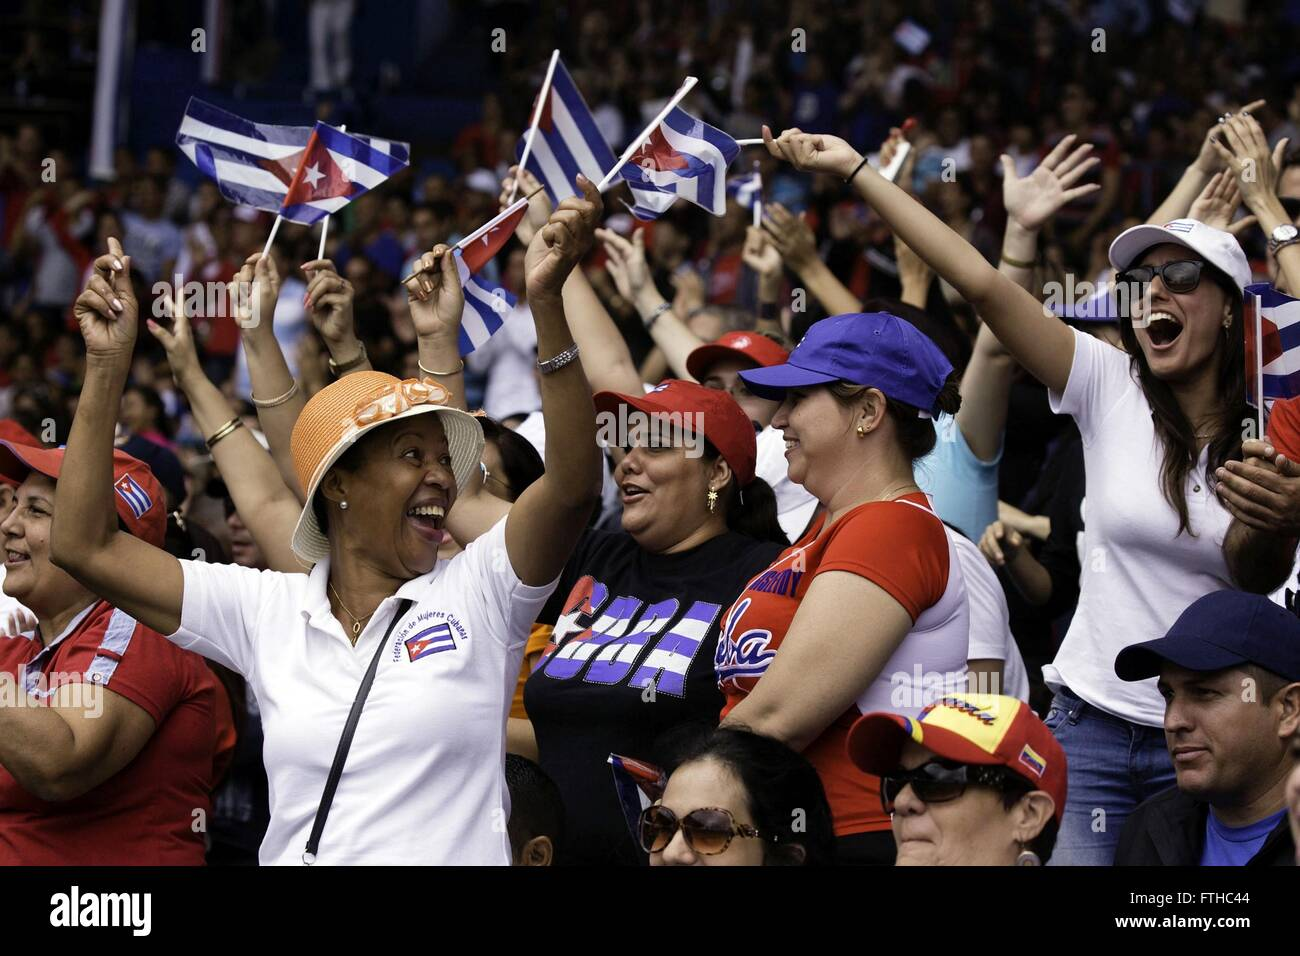 Fans react during an exhibition baseball game between the Tampa Bay Rays and the Cuban National Team at the Estadio - Stock Image